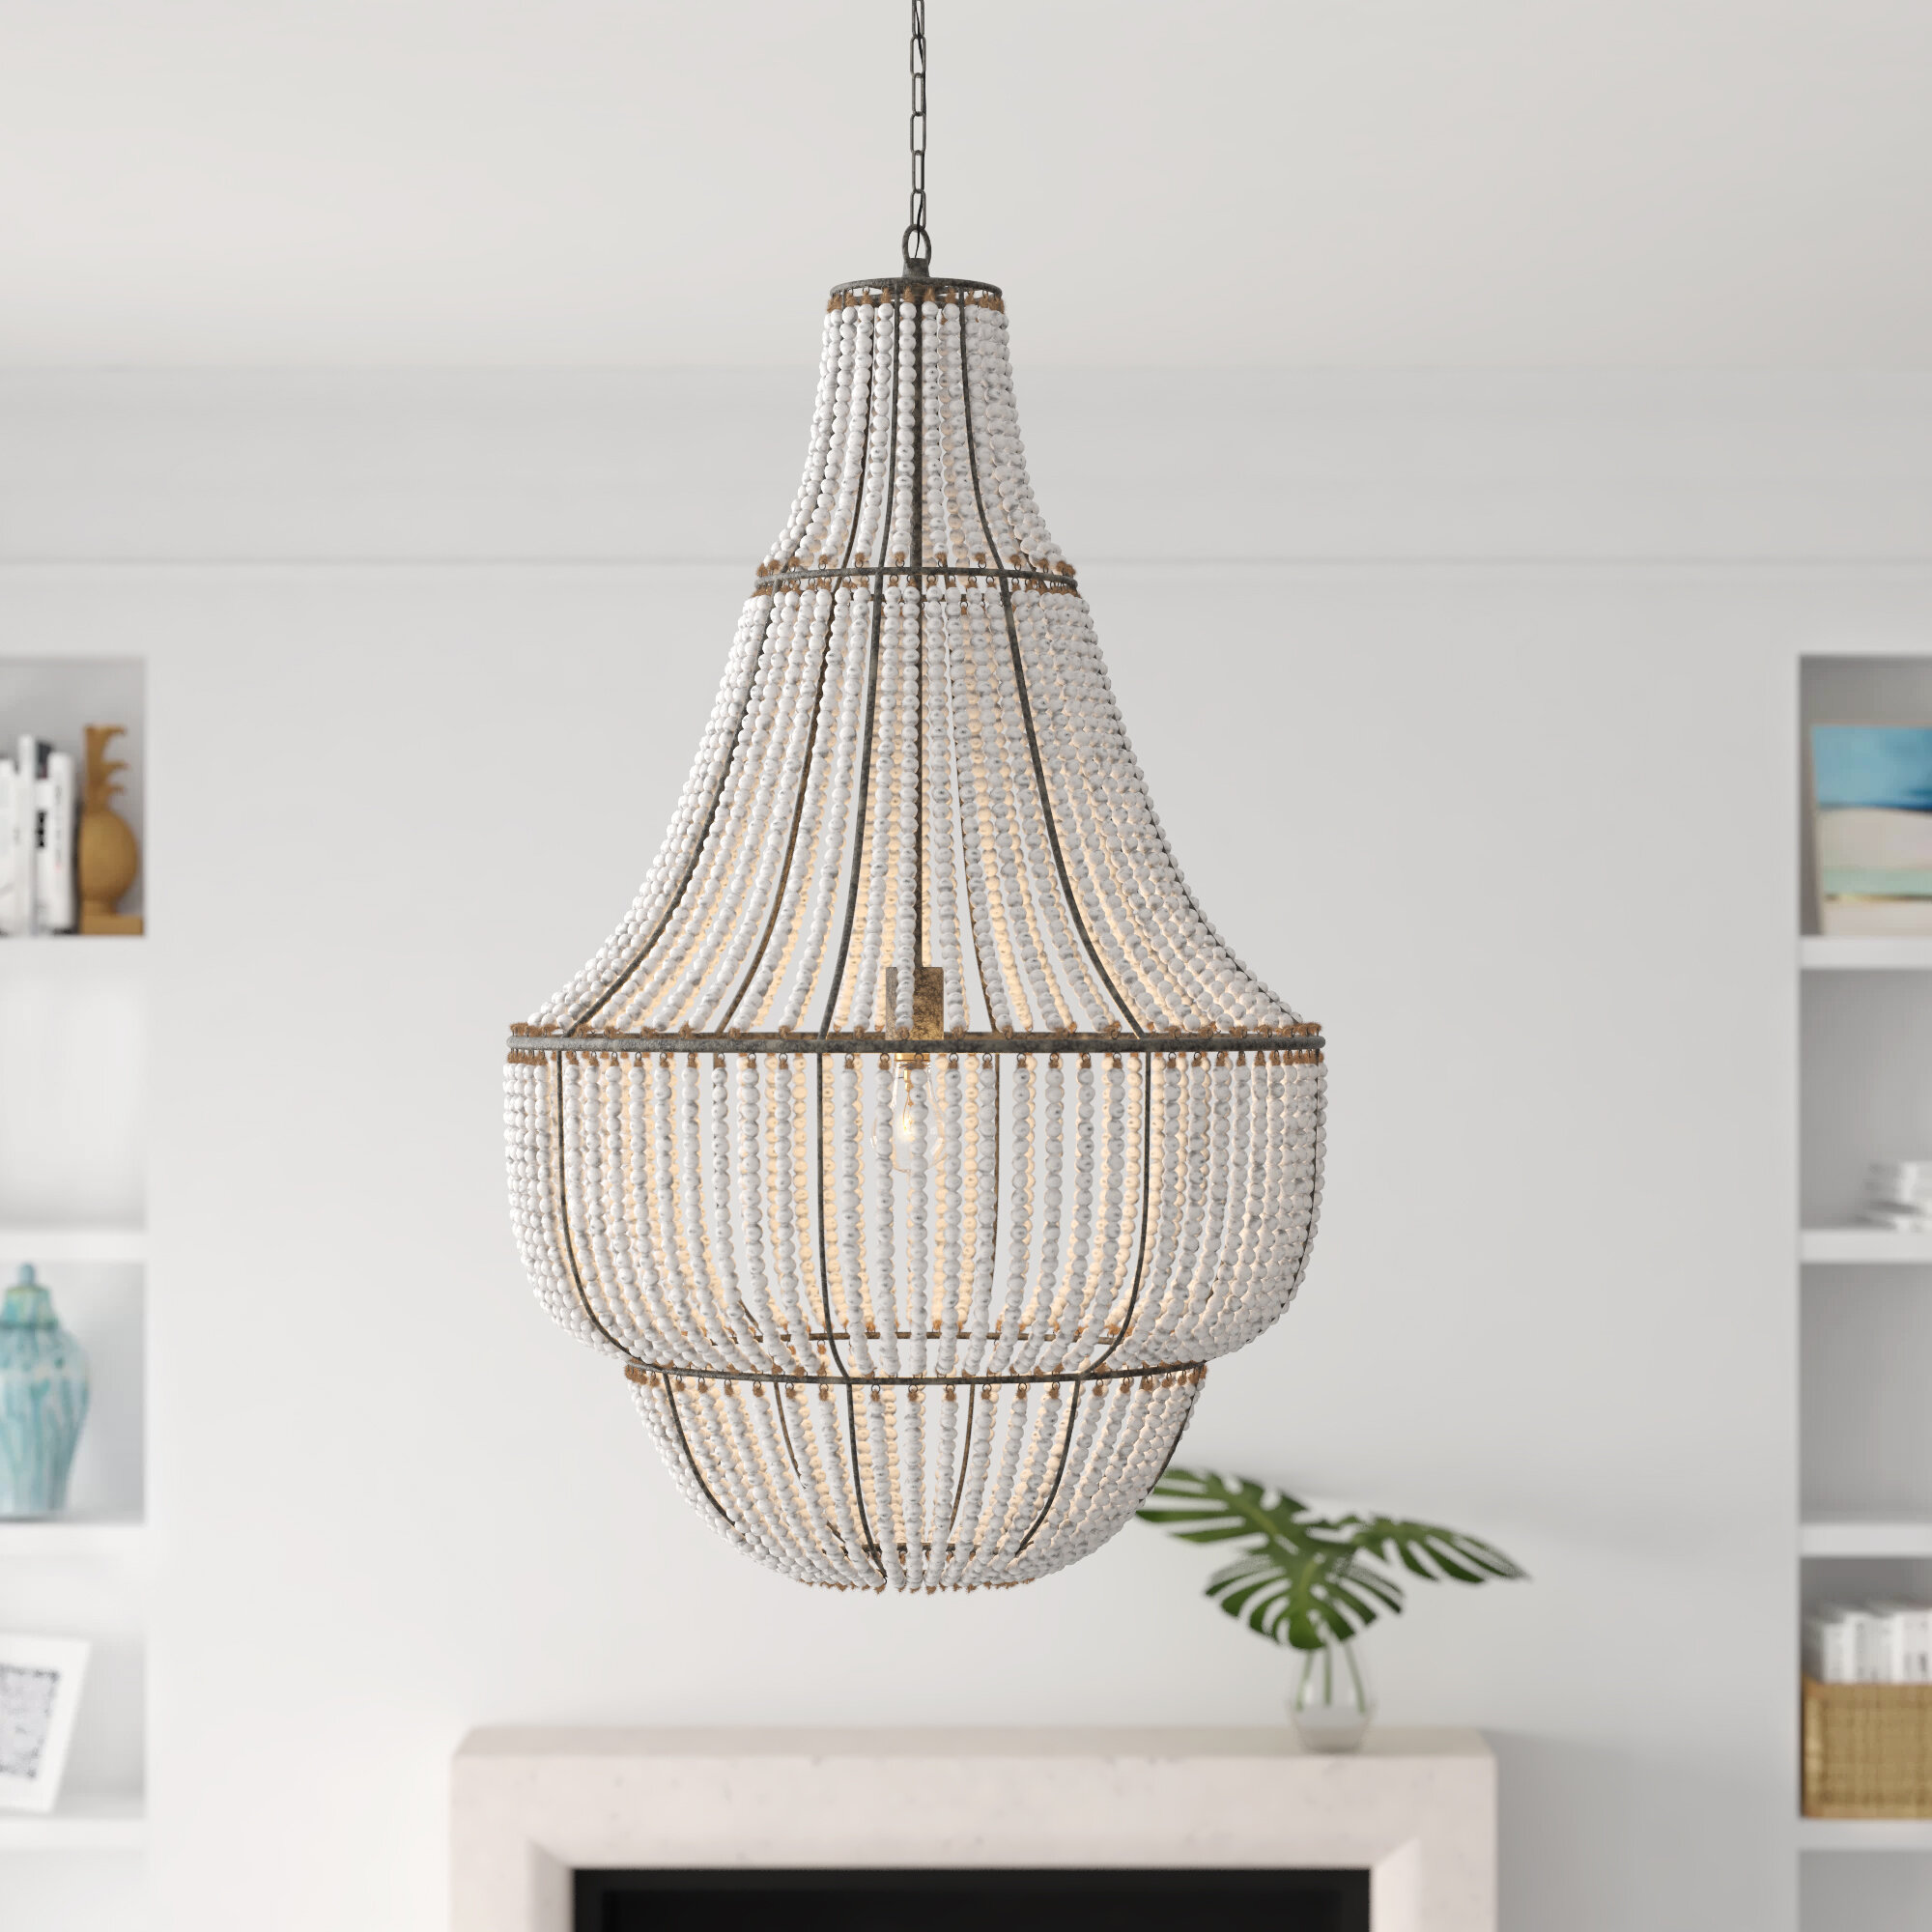 Annora 1 Light Single Geometric Pendant Reviews Joss Main